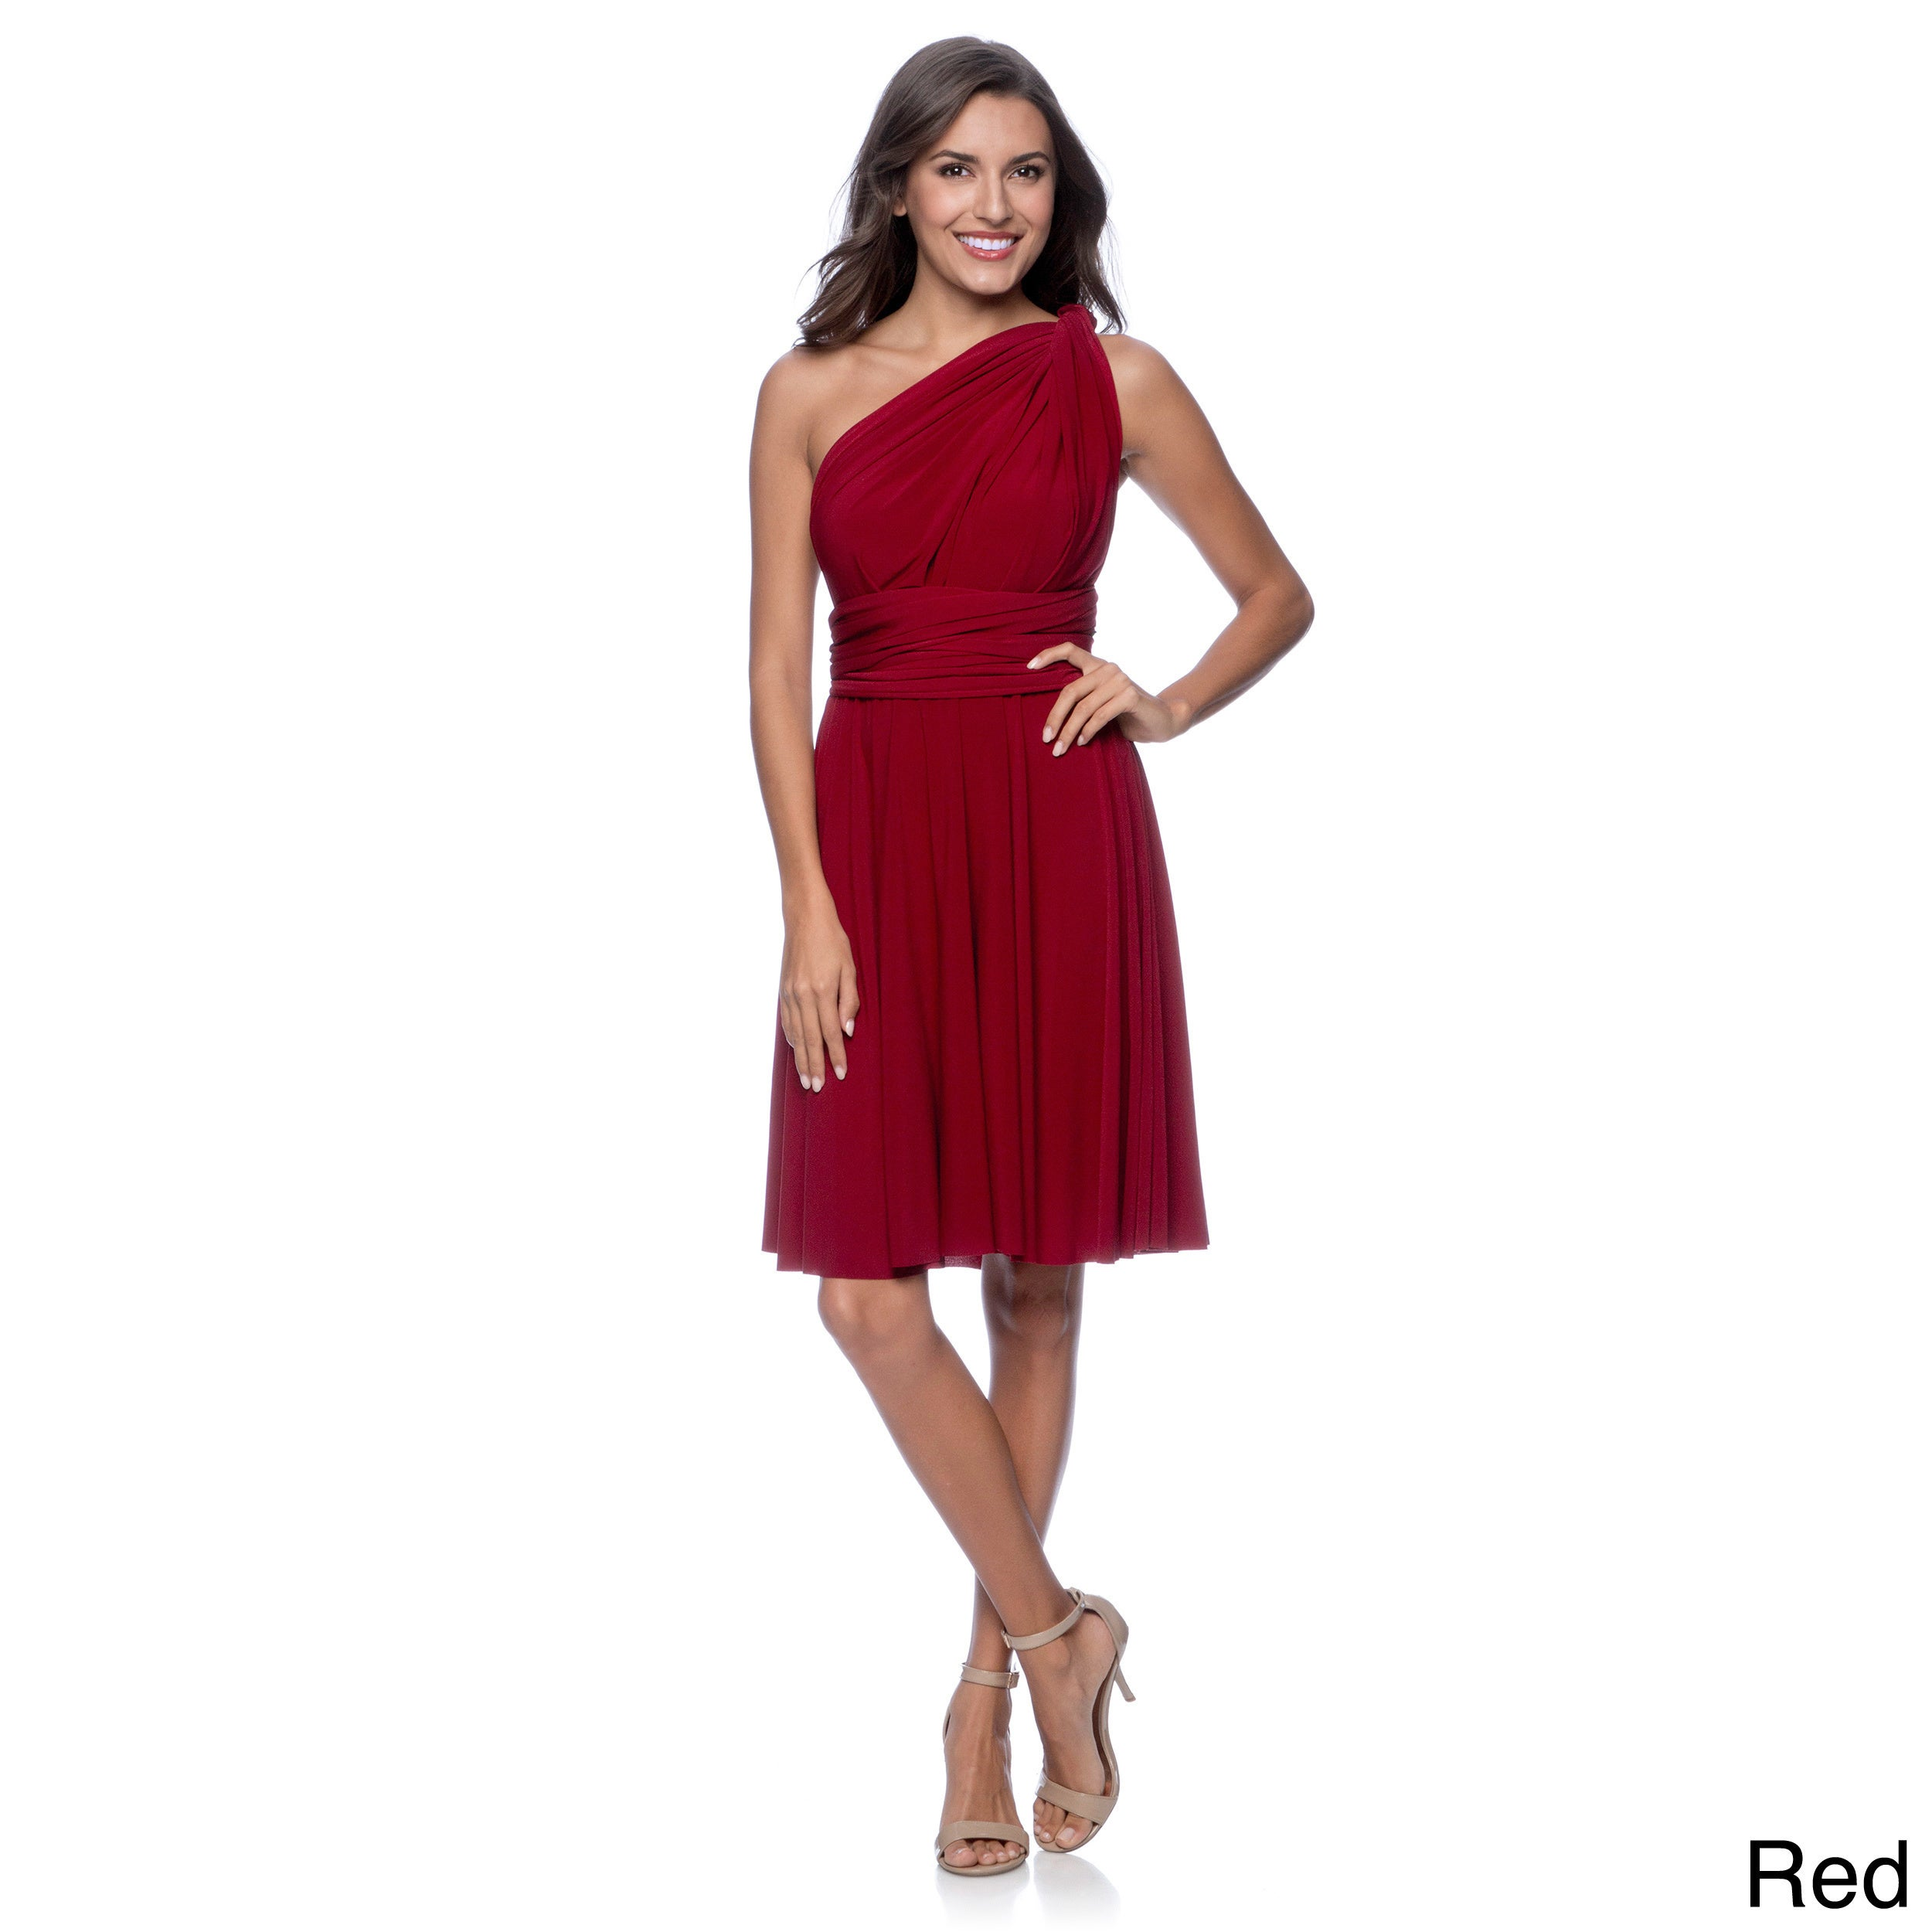 b1ab7a2b113d Shop Women's Short Dress Convertible Wrap Cocktail Gown Multi Way Bridesmaid  Dresses One Size Fits 0-12 - Free Shipping Today - Overstock - 9215975